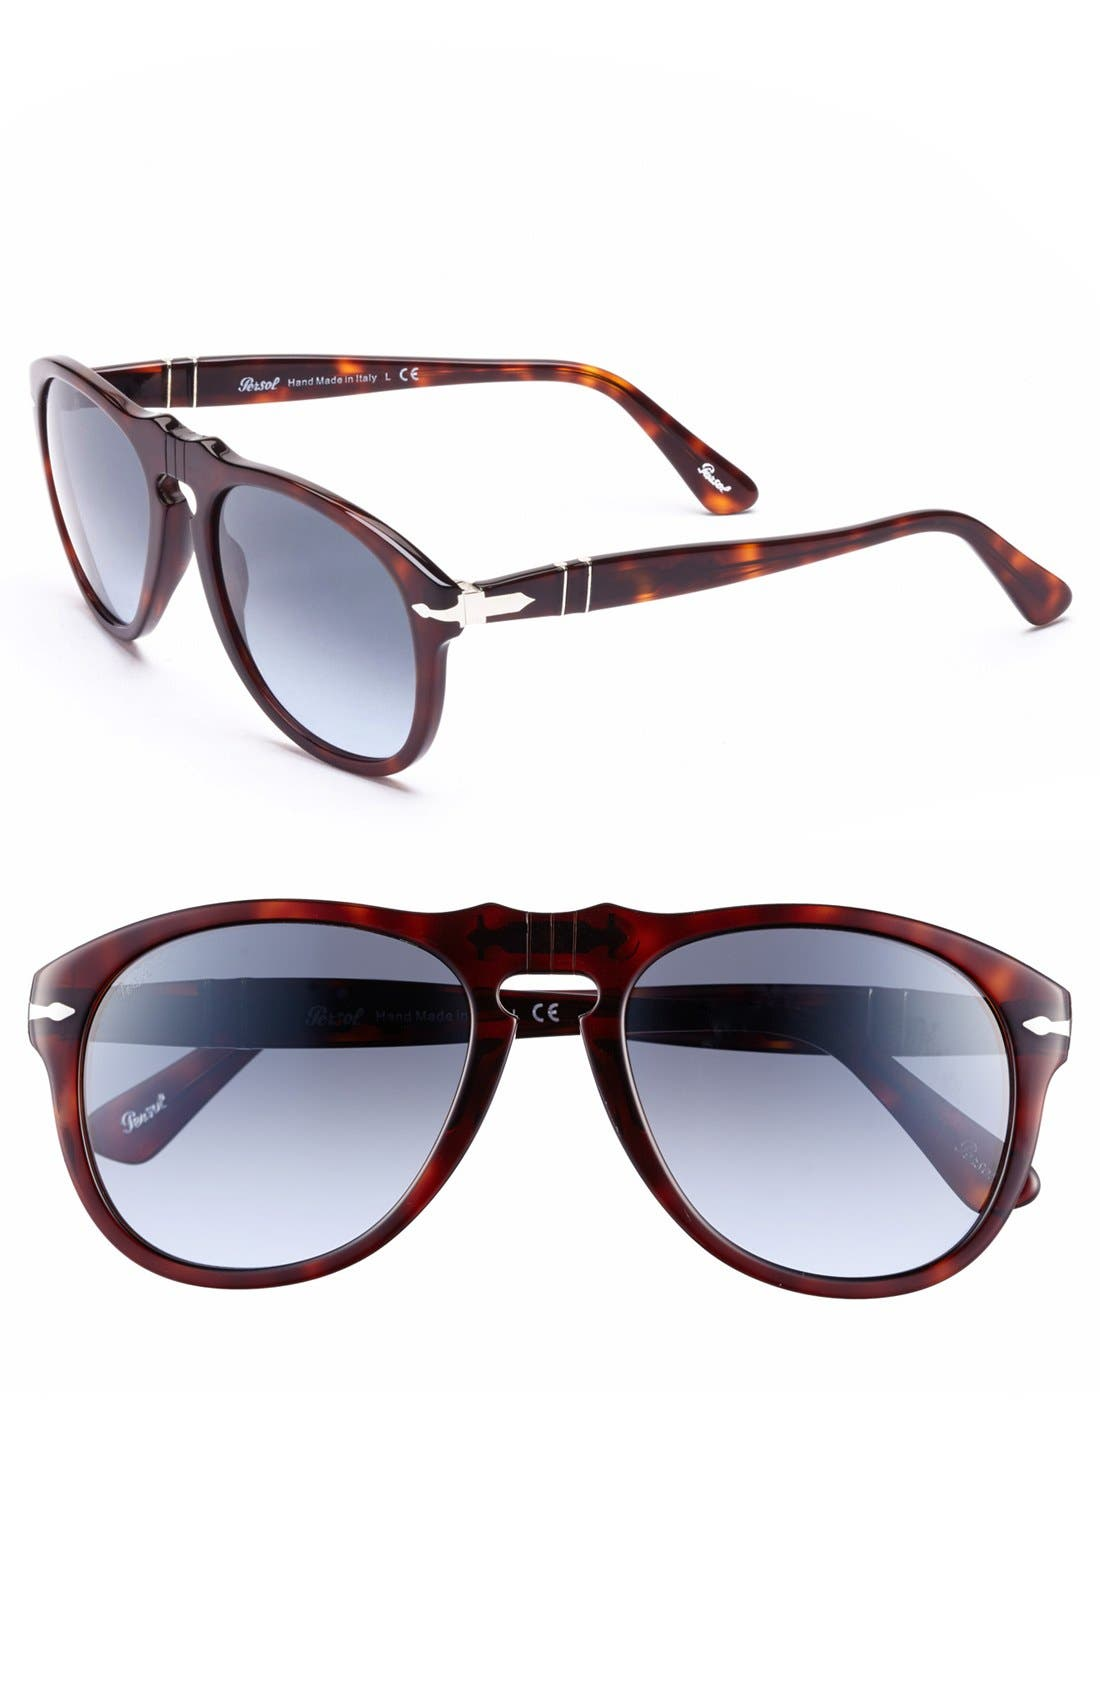 Main Image - Persol '649' Retro 52mm Keyhole Sunglasses